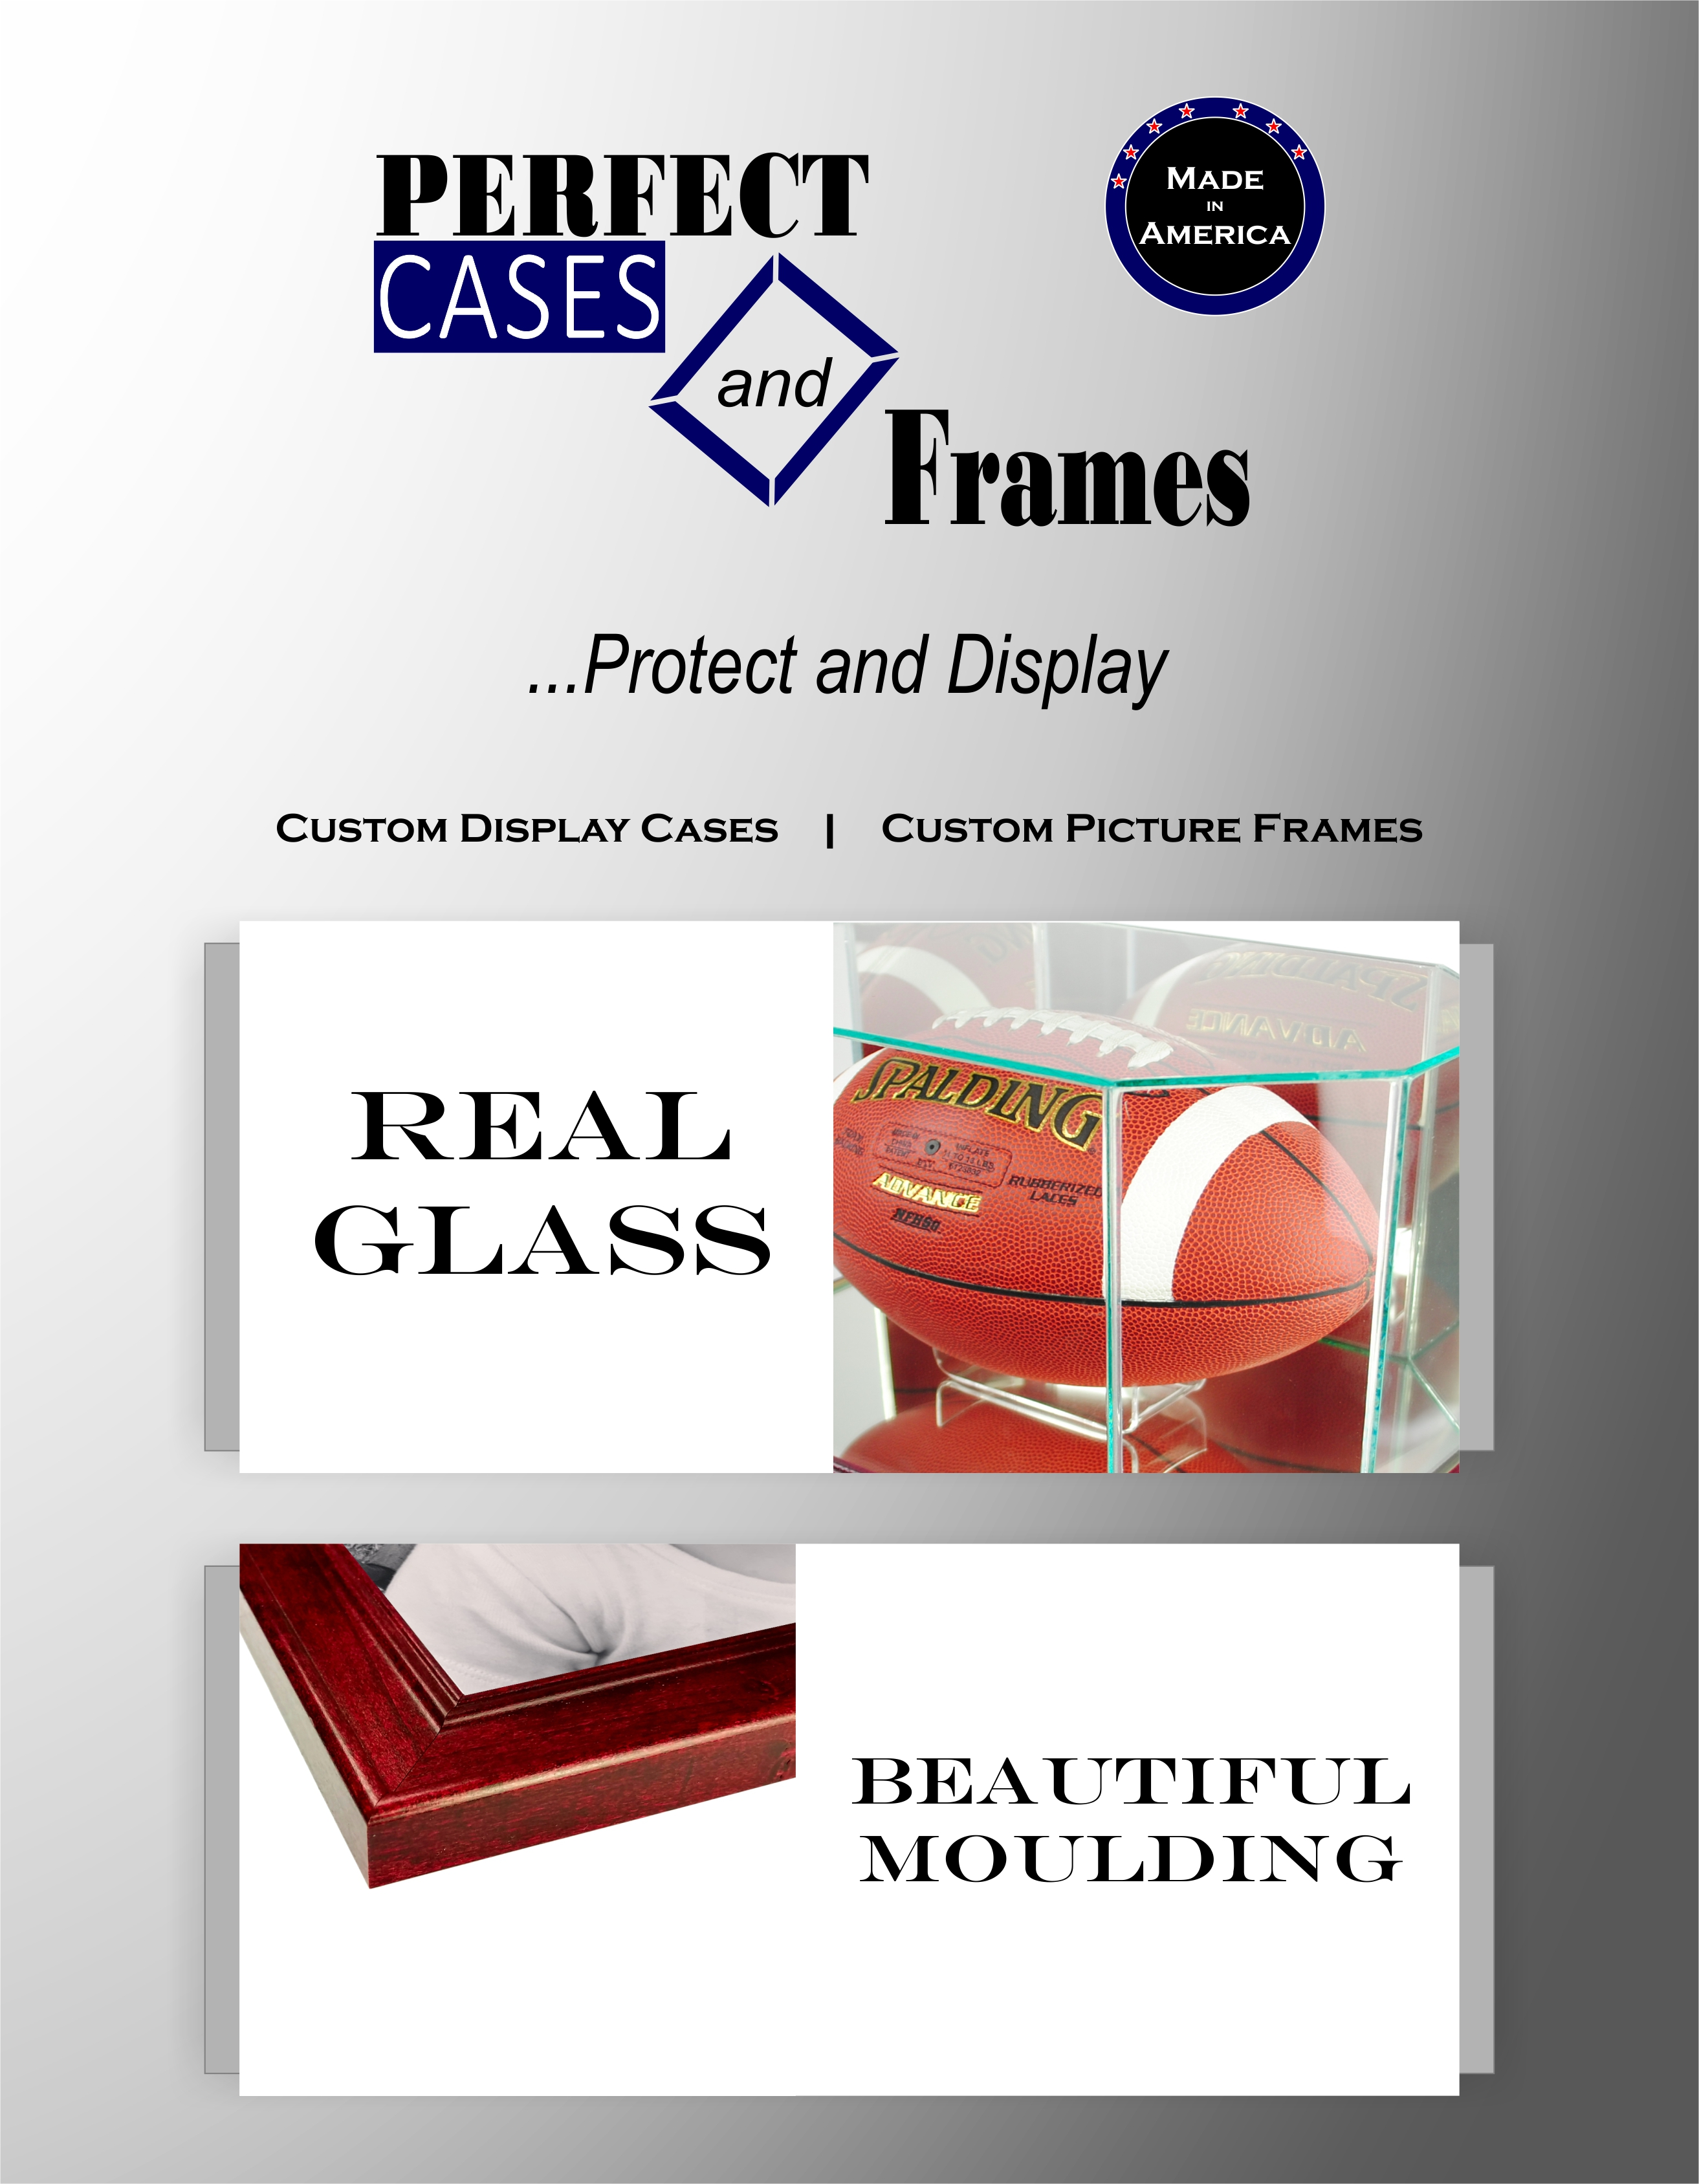 Perfect Cases and Frames 2019 Catalog